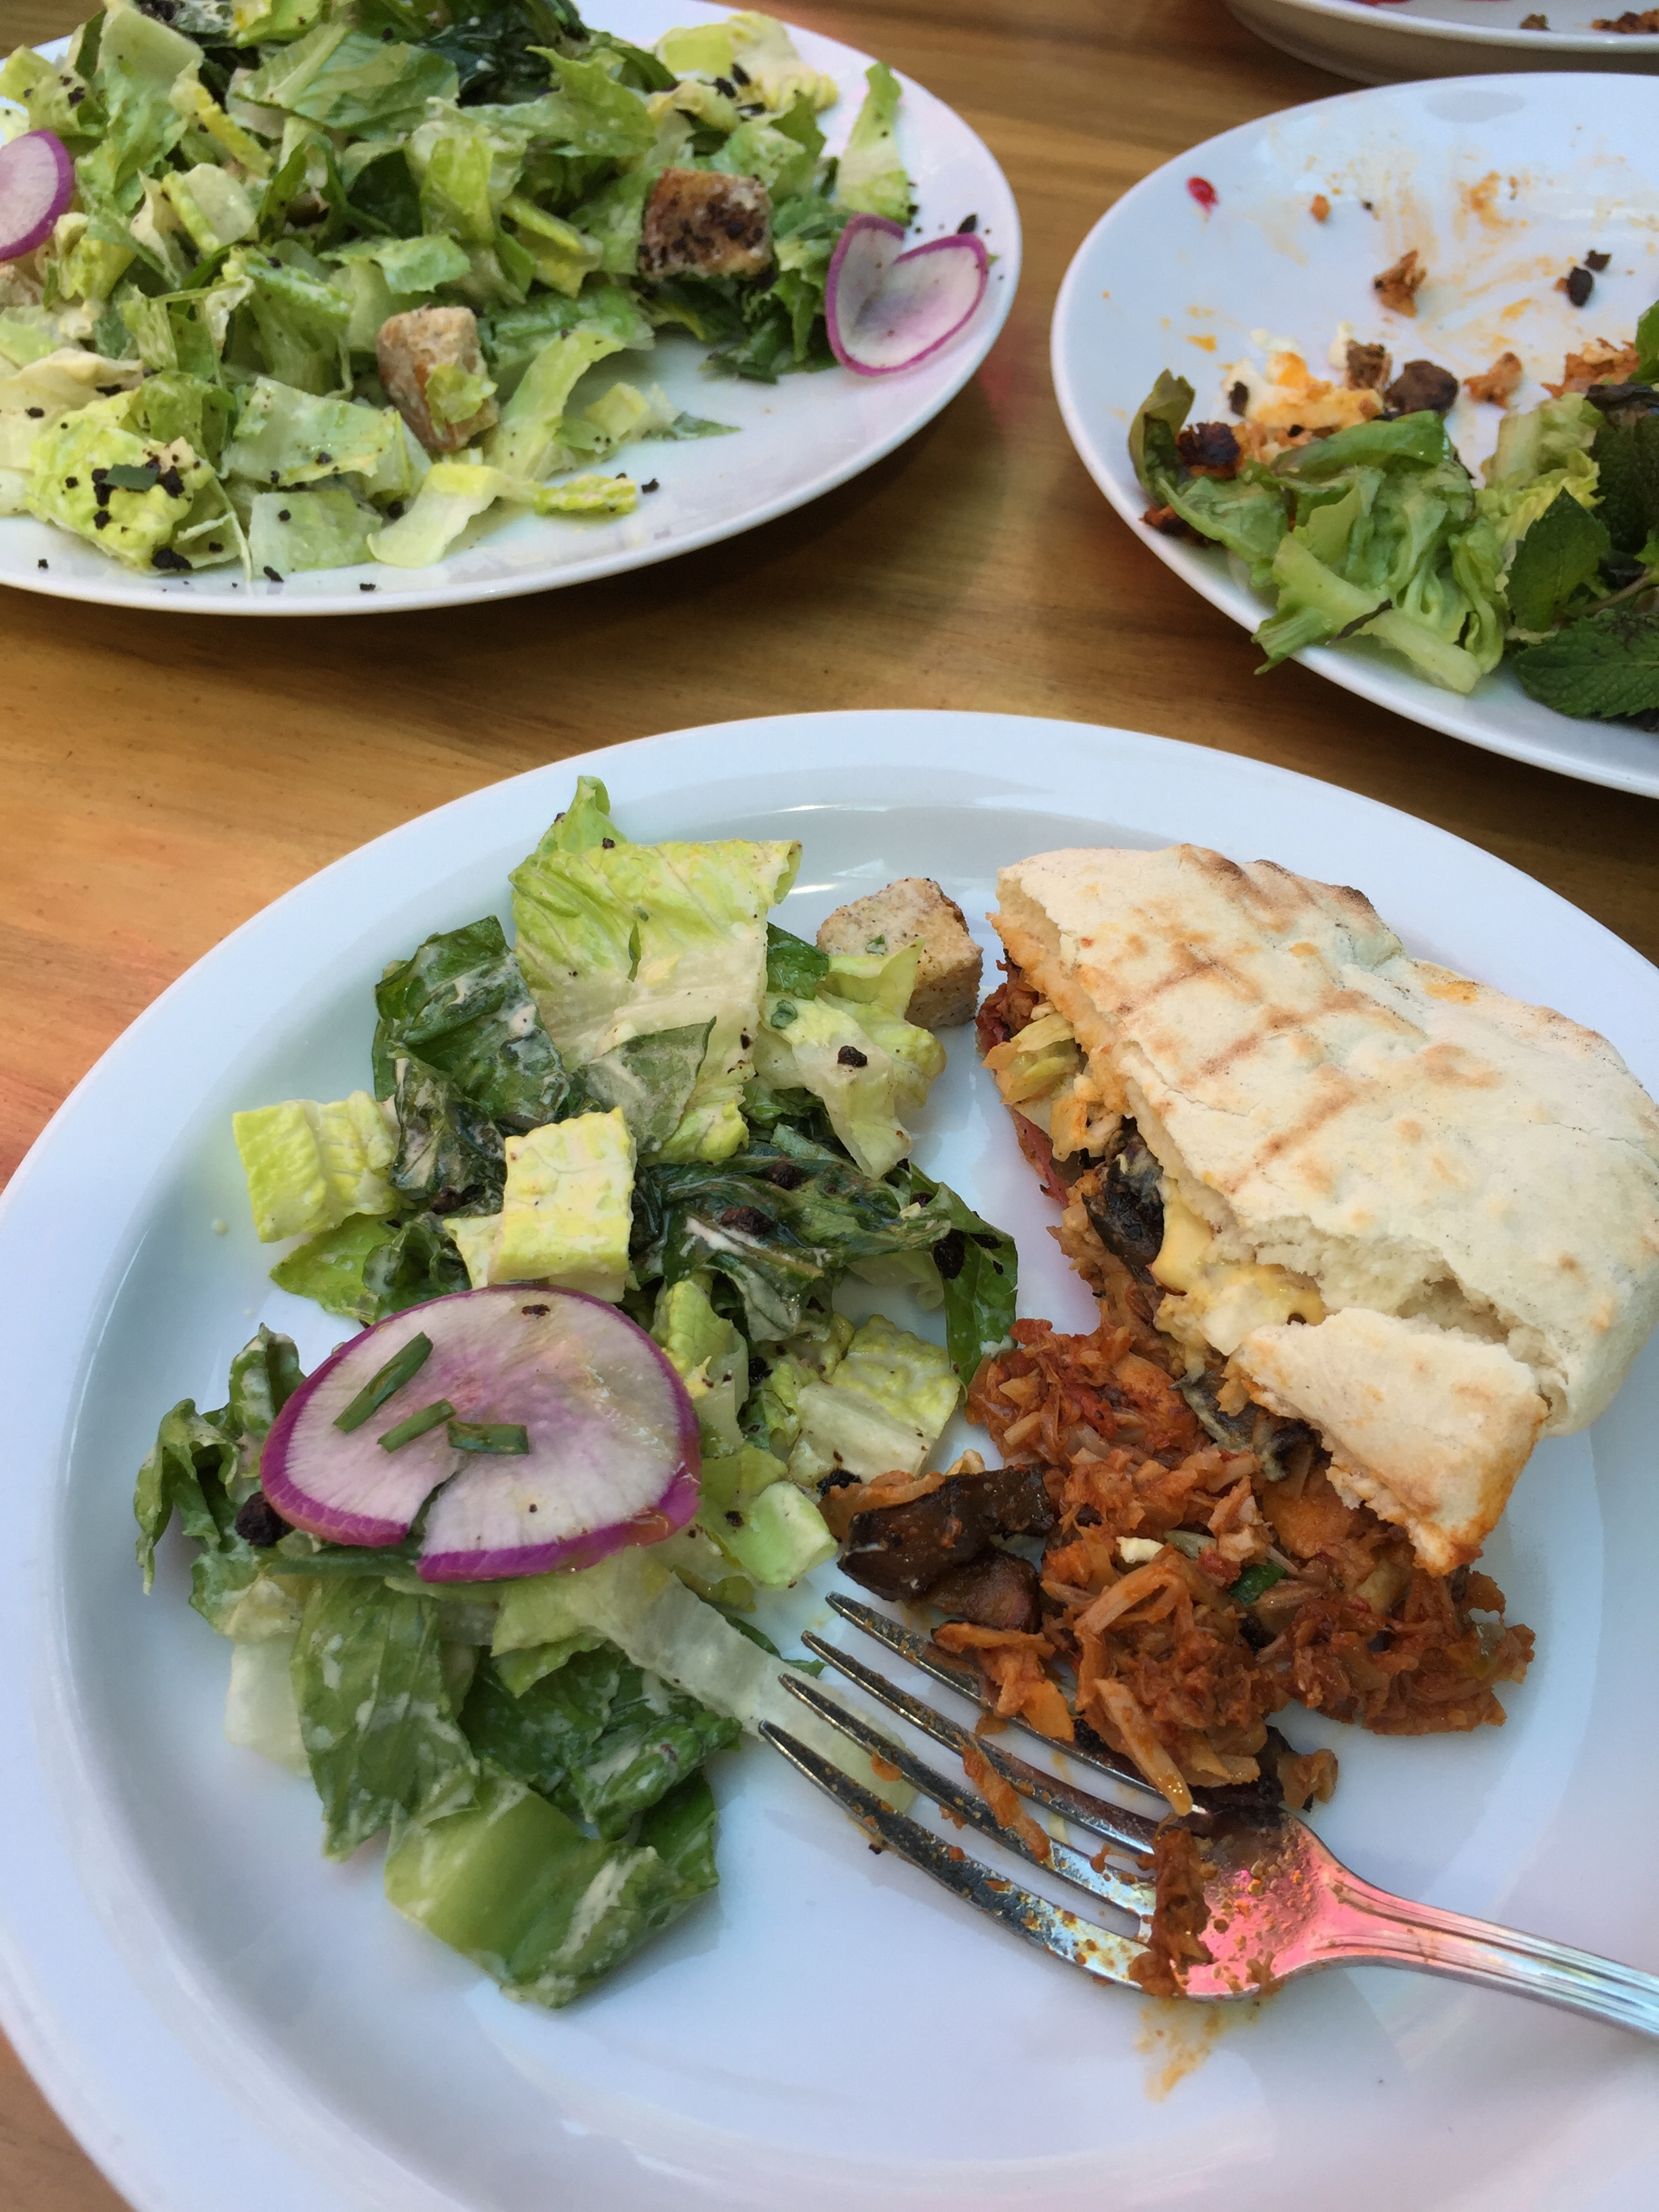 Vegan Restaurant Reviews - Take a look at other reviews that offer vegan-friendly options